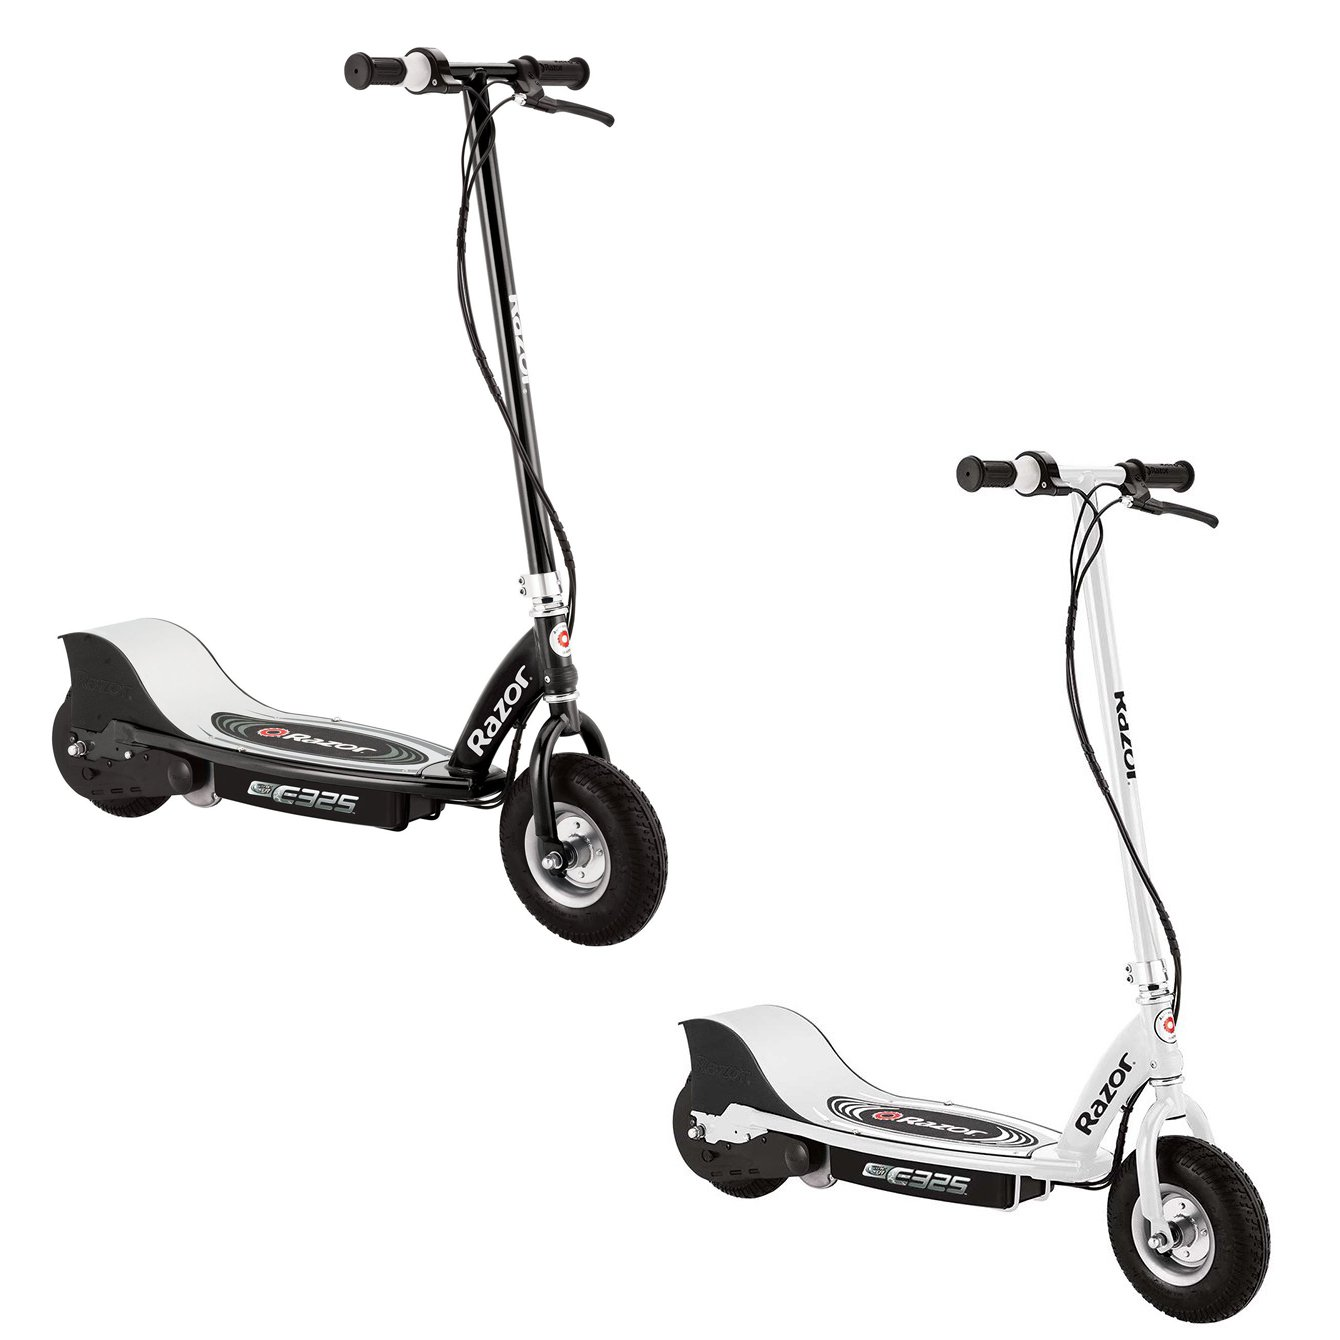 Razor E325 Electric Battery Motorized Ride On Kids Scooters, 1 White & 1 Black by Razor